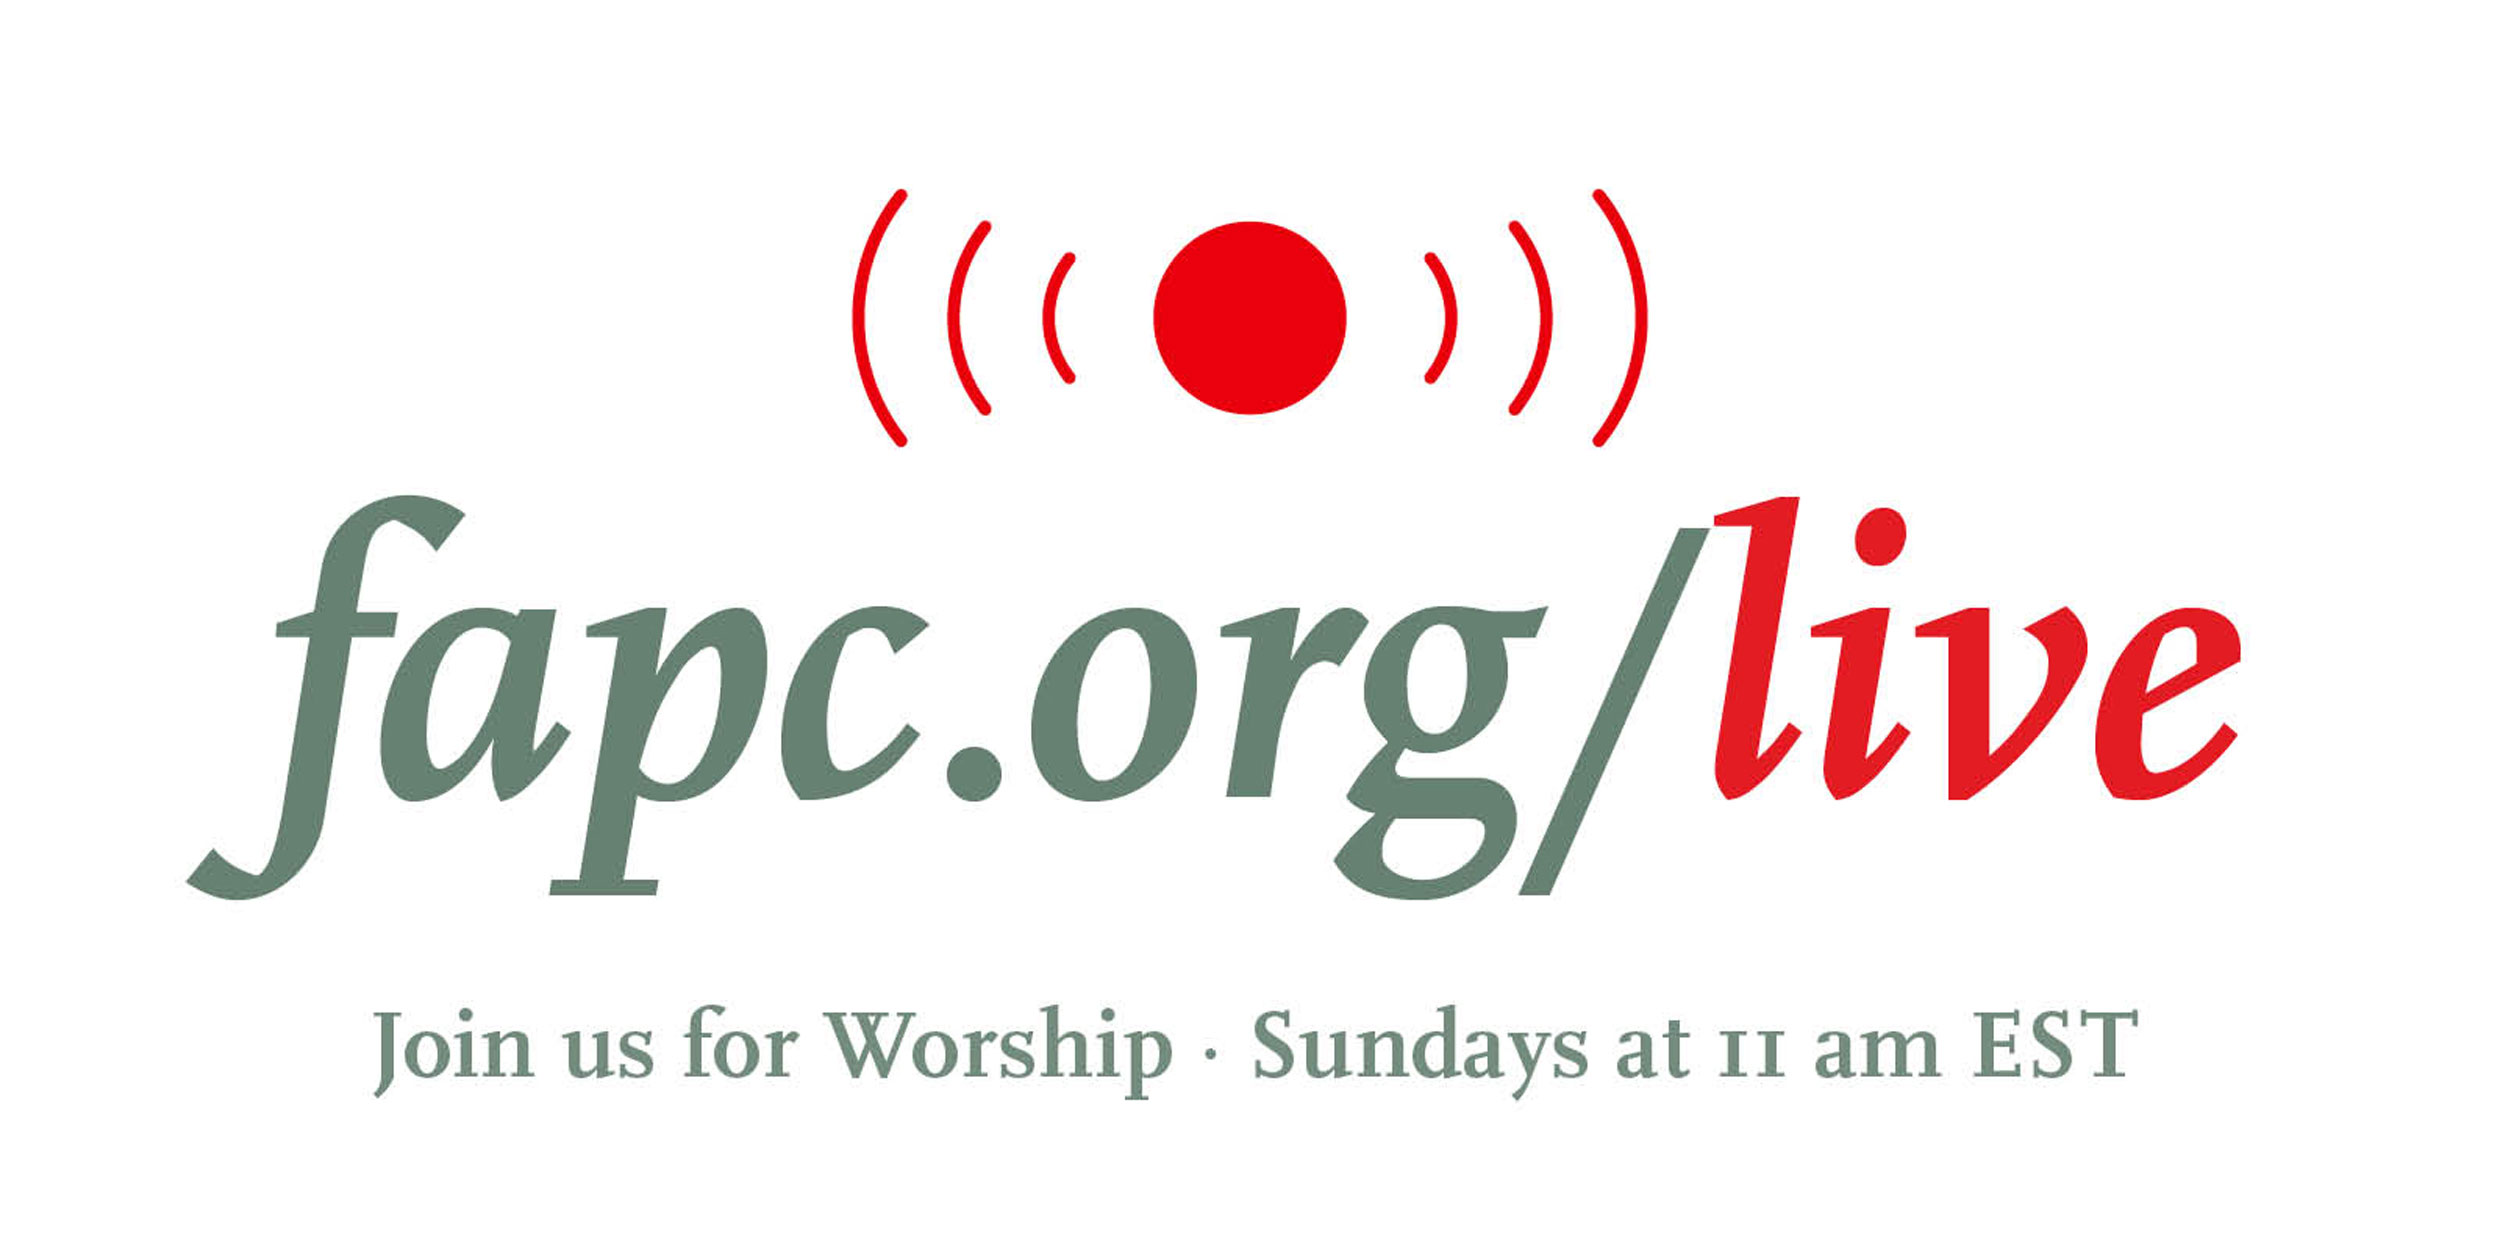 Join us for Worship at fapc.org/live